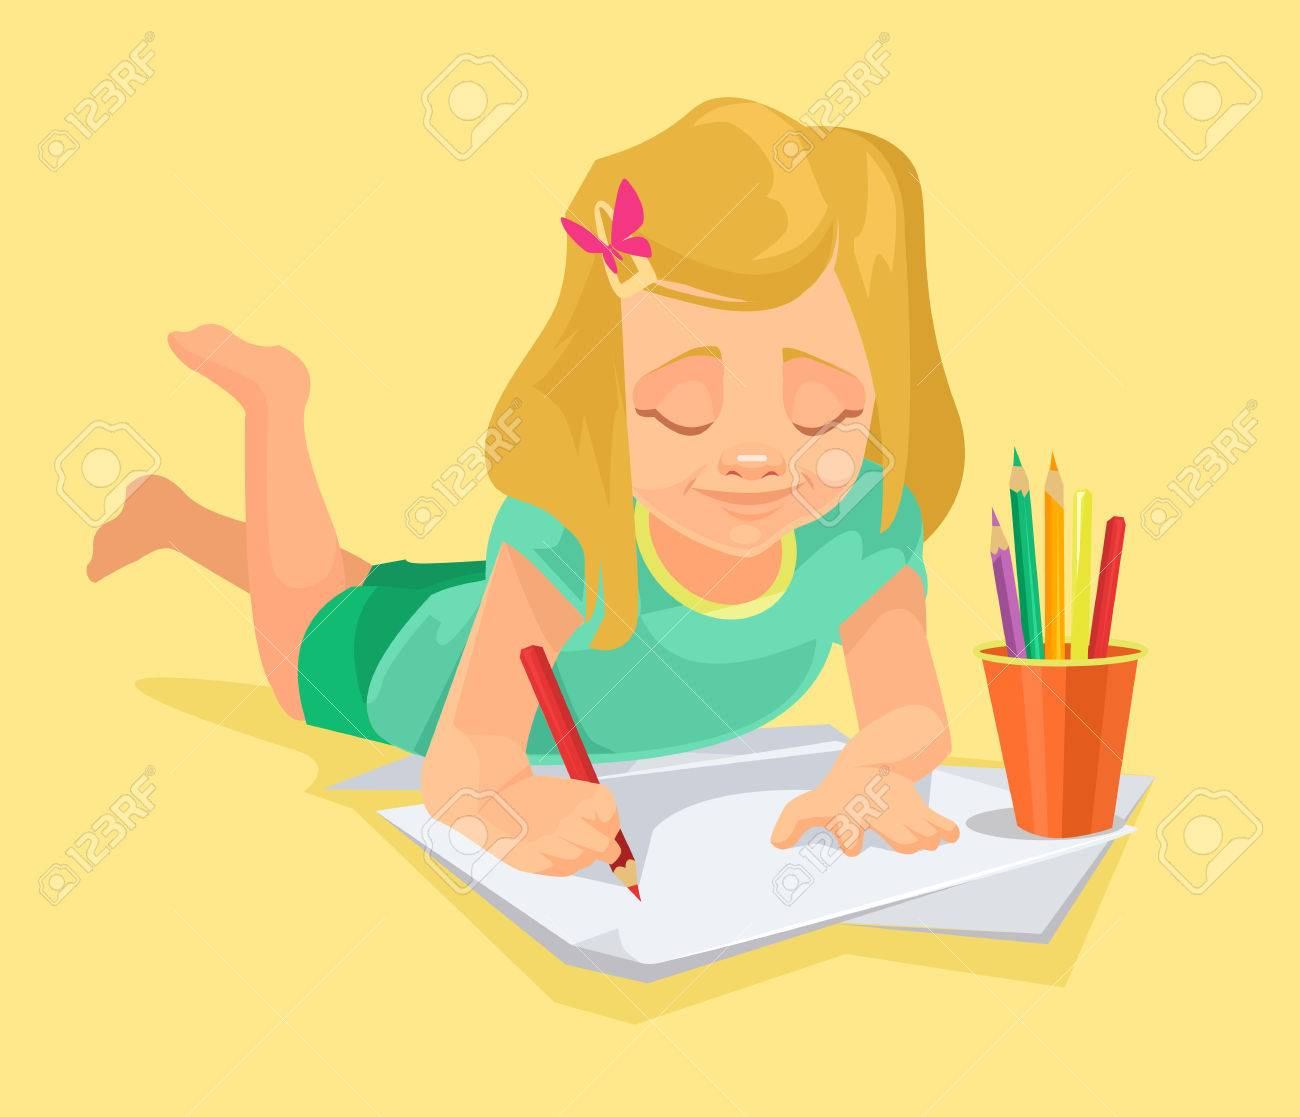 Girl drawing clipart 6 » Clipart Station.